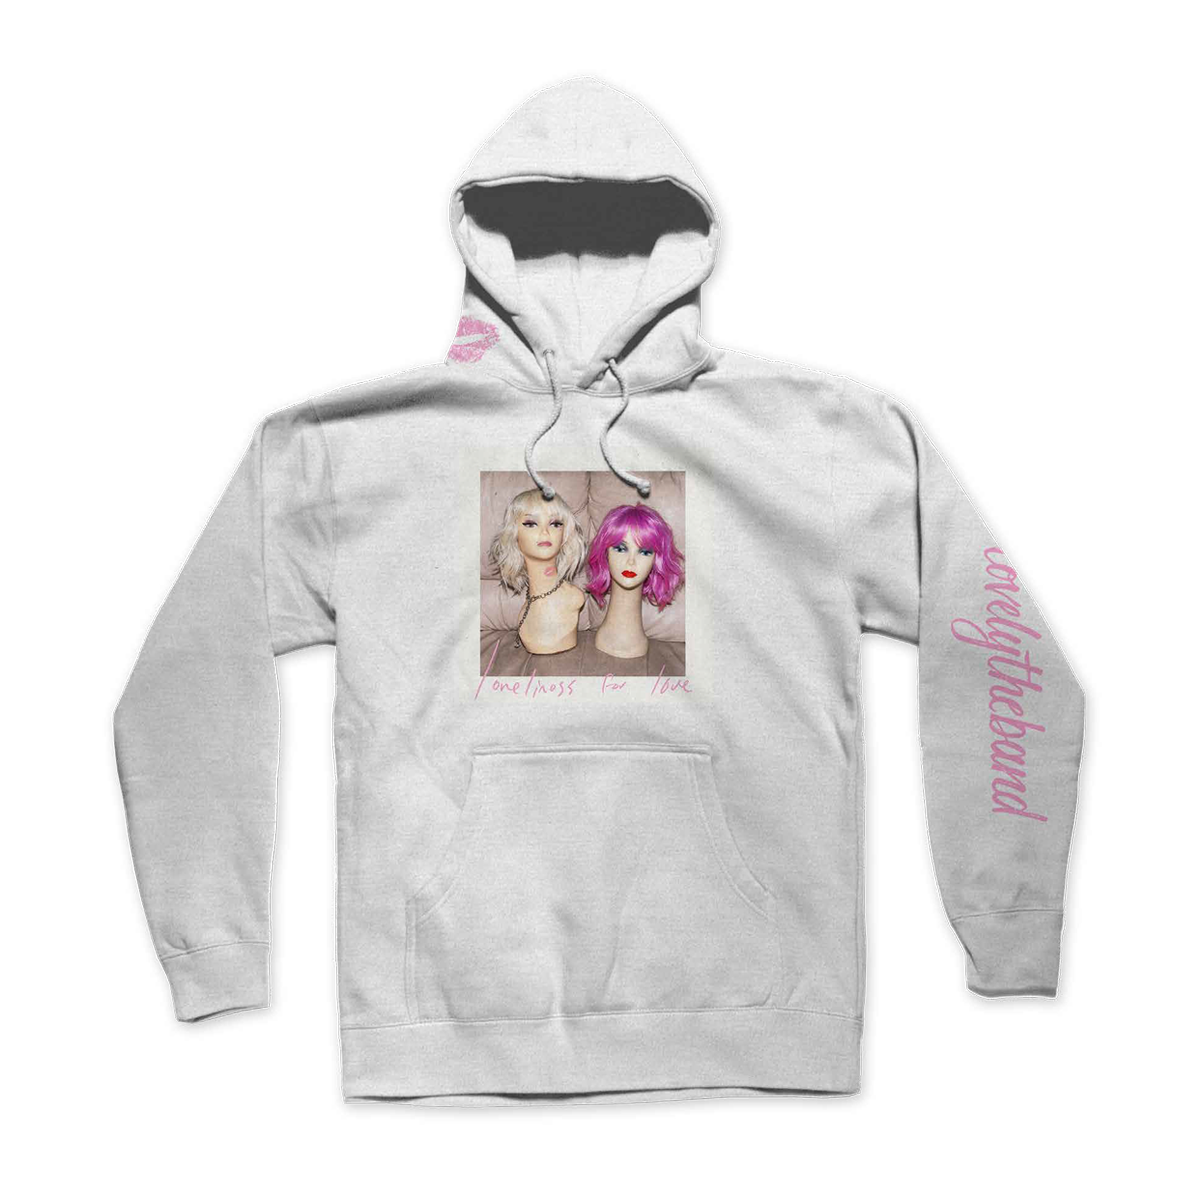 loneliness for love white hoodie & sweatpants